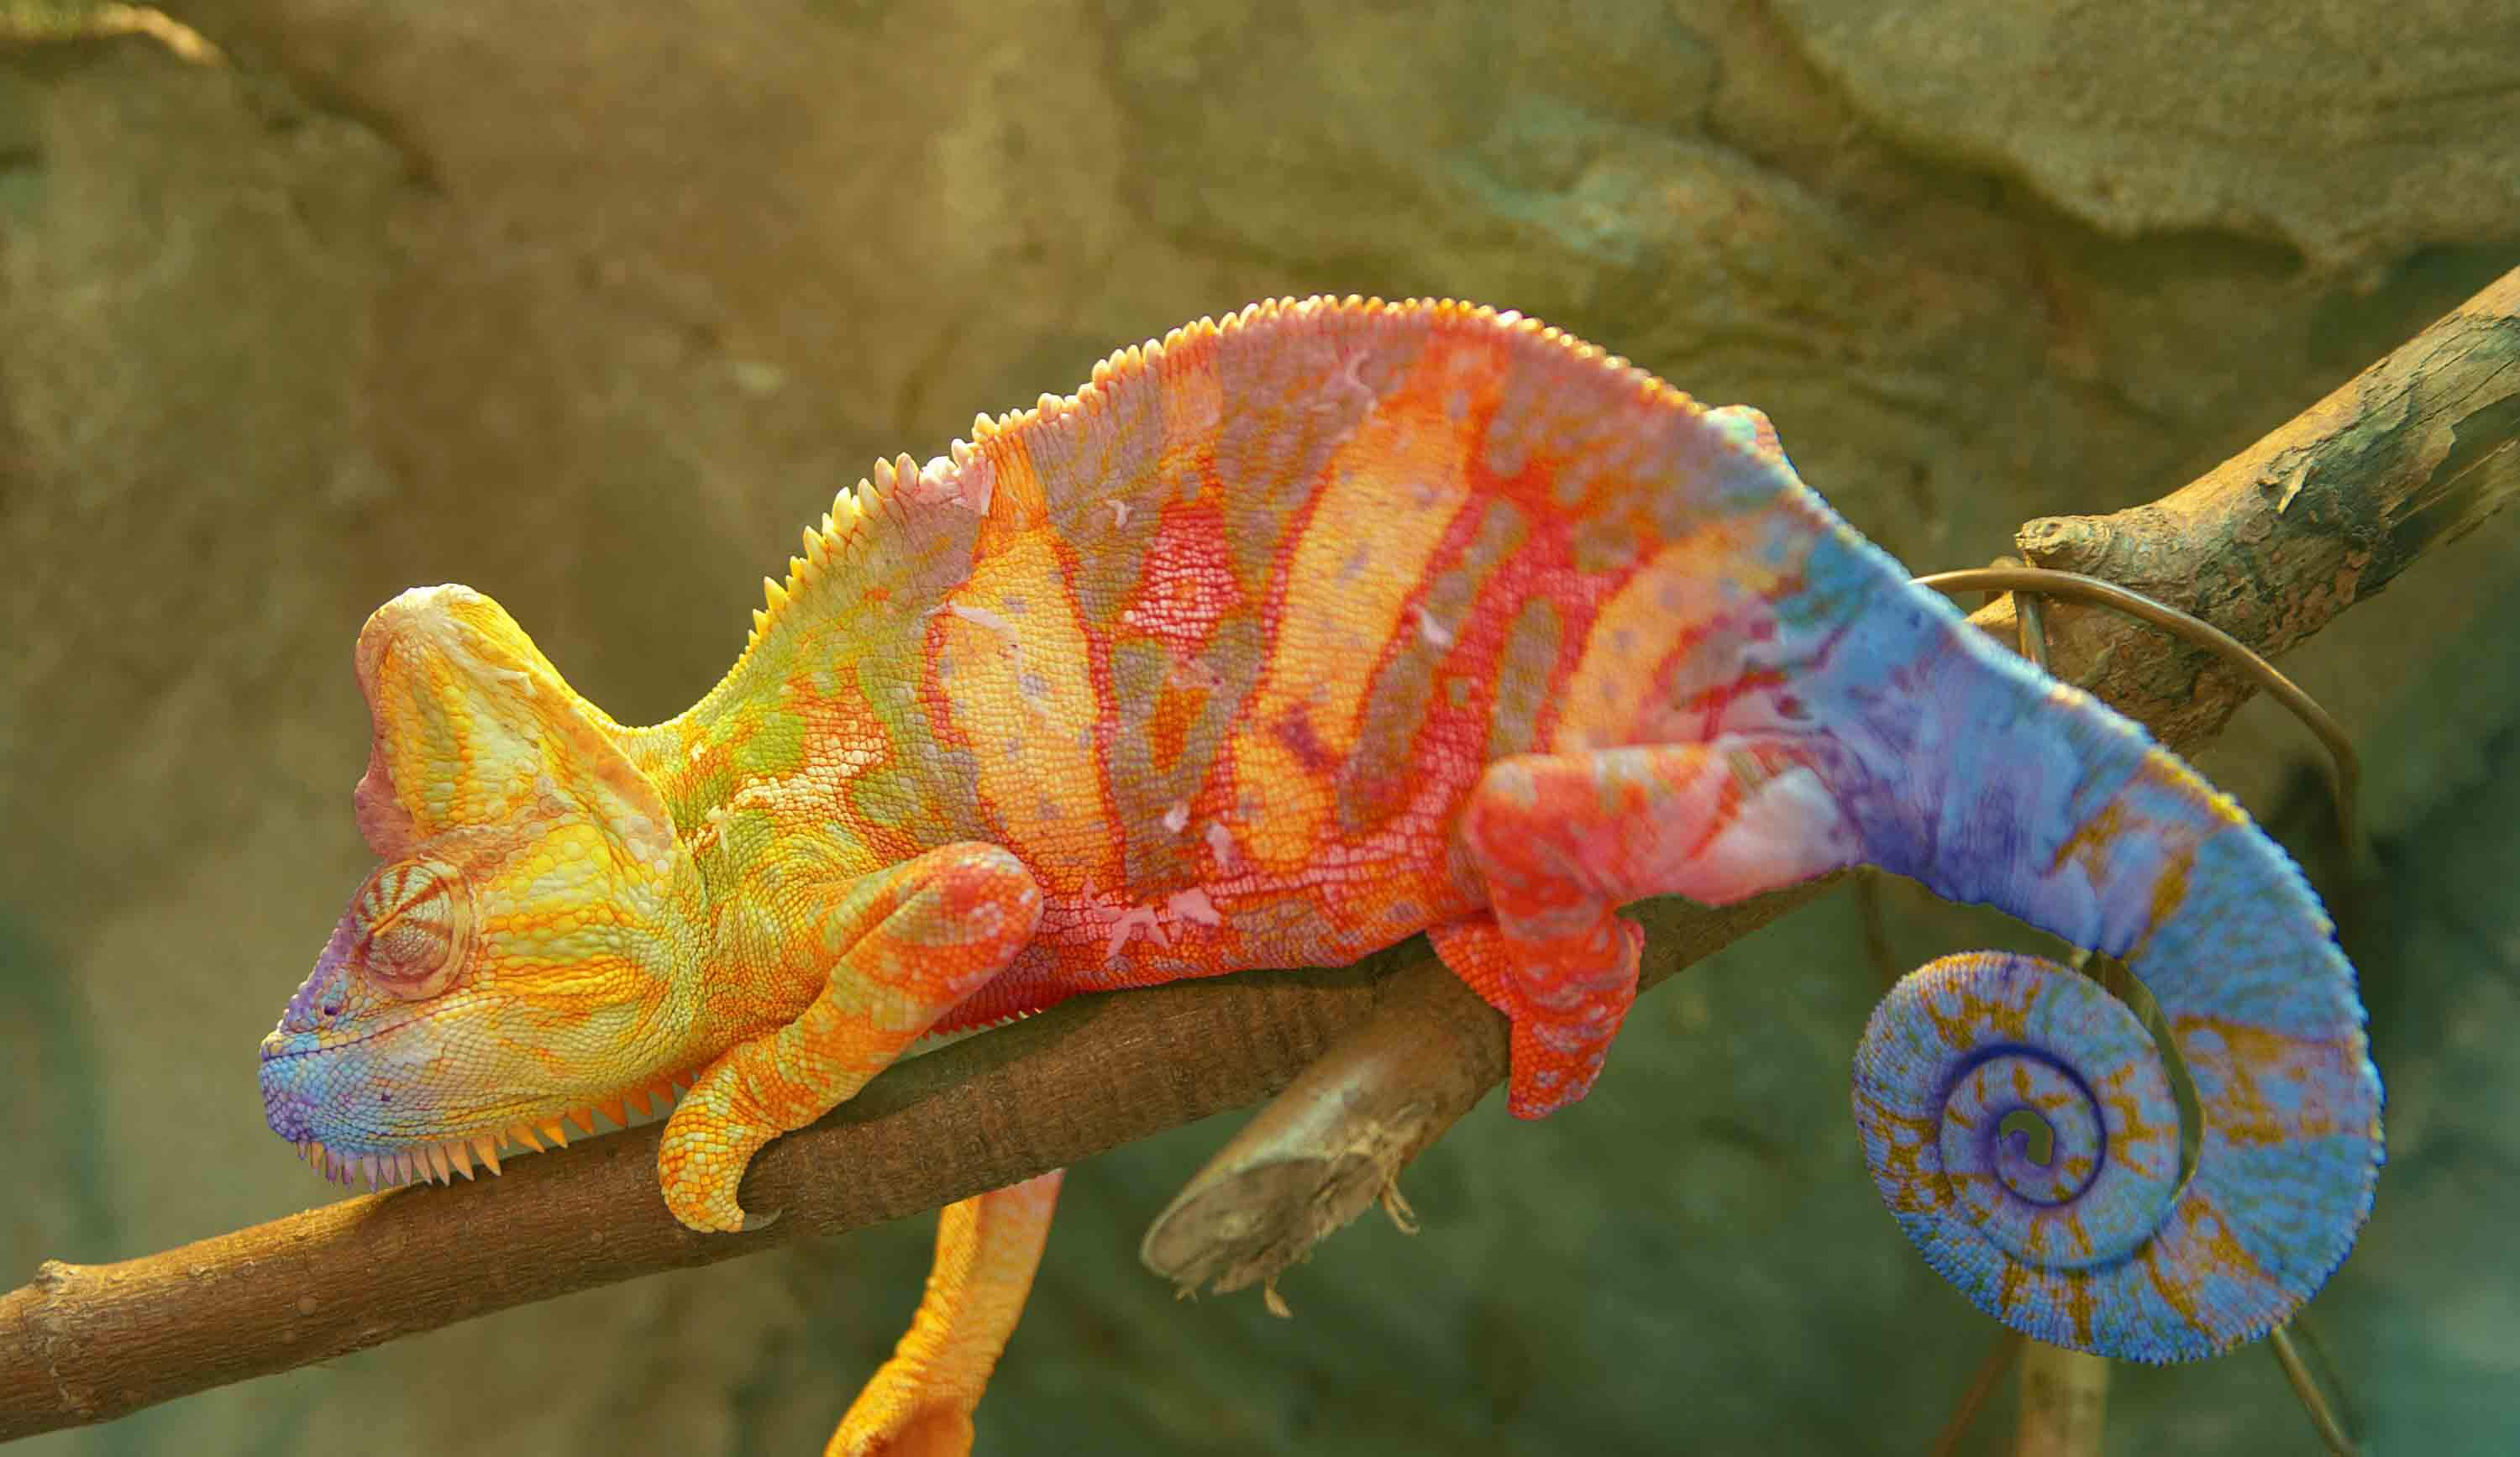 colourful chameleon on a branch